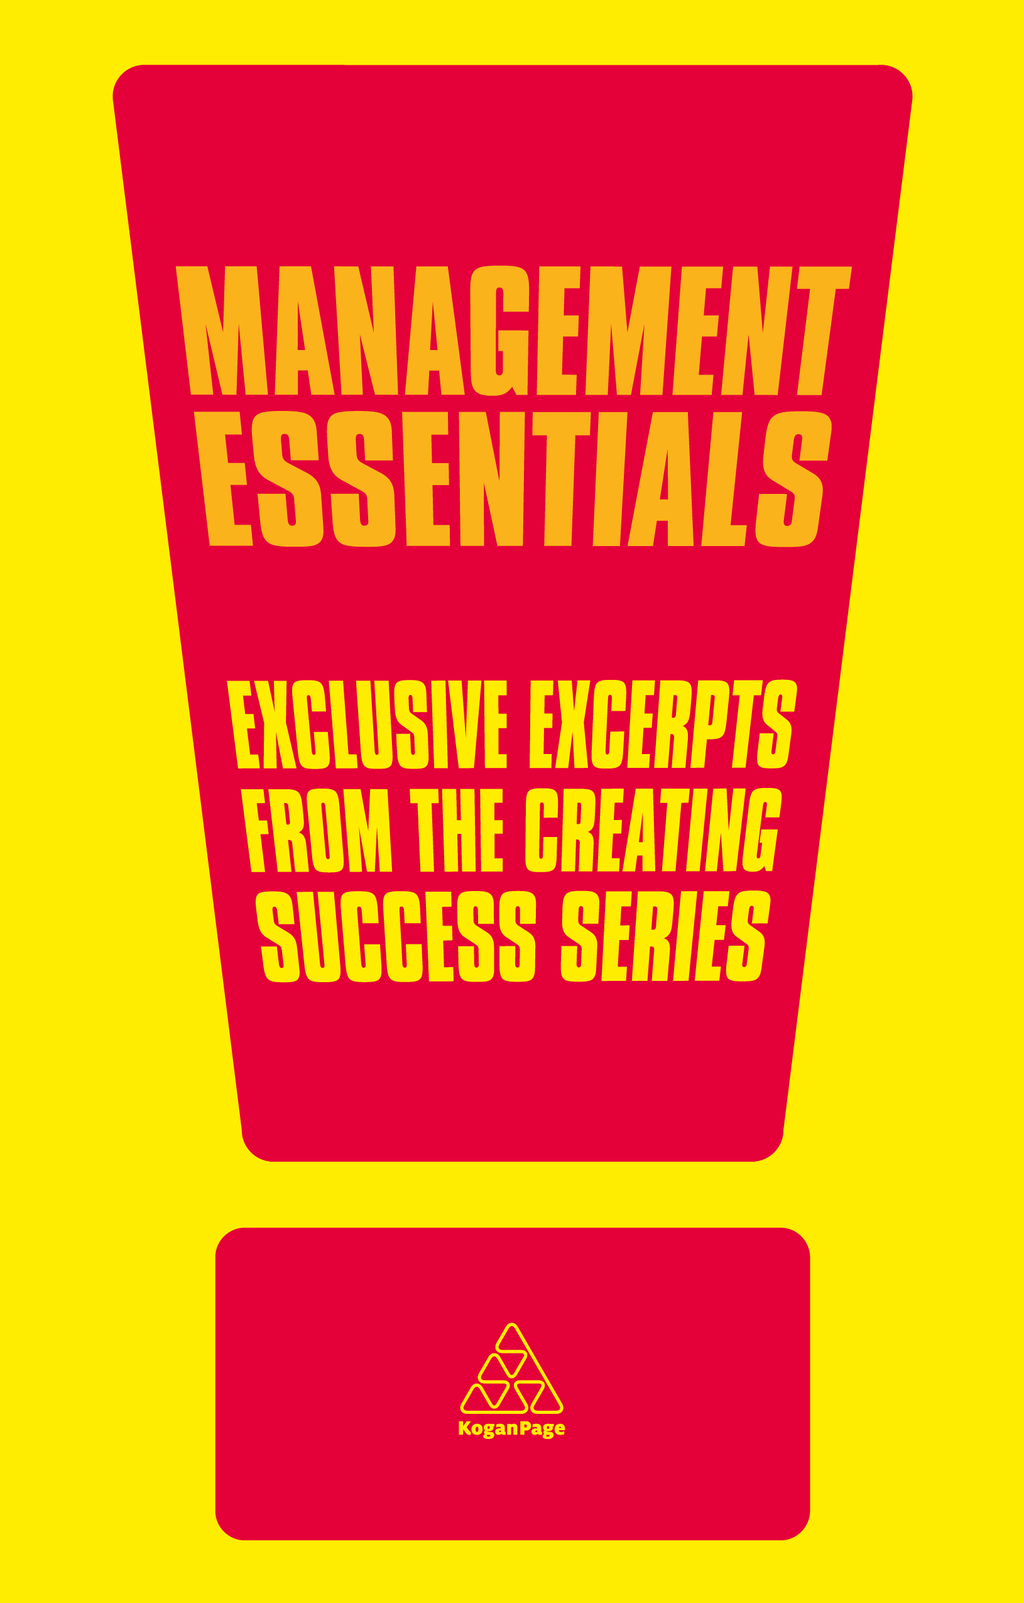 Management Essentials By: Alan Barker,John Adair,John Caunt,Michael Armstrong,Roy Lilley